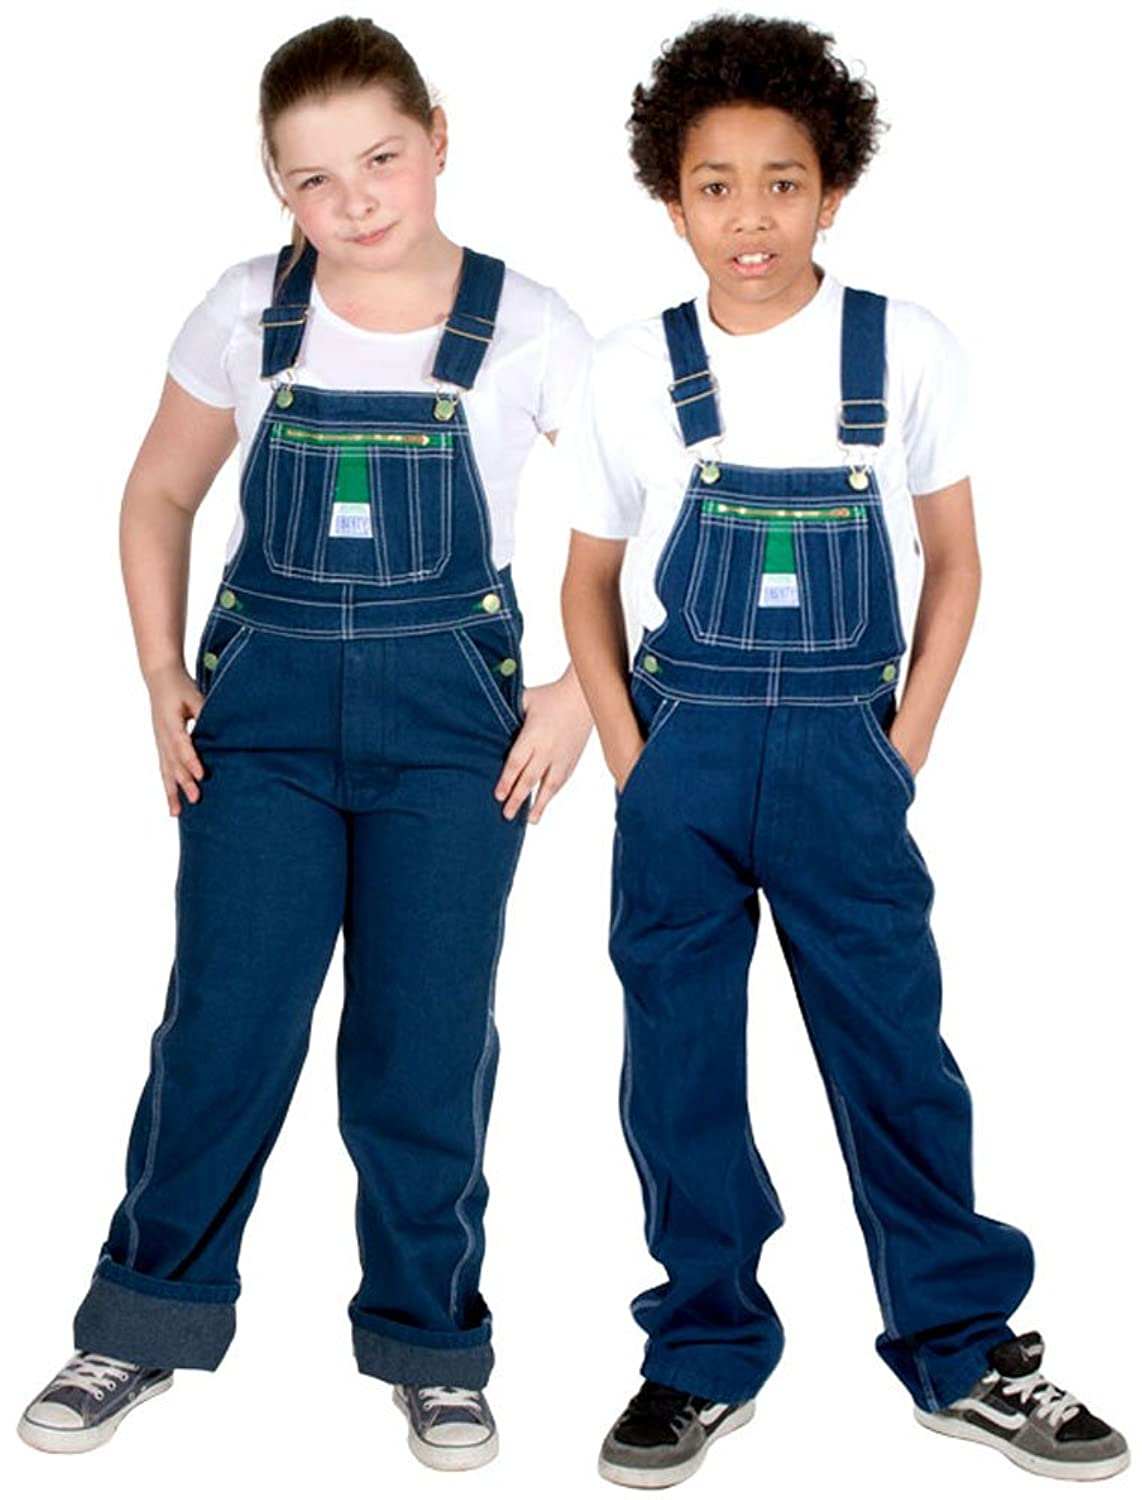 Guys in Bib Overalls Big Boys' Bib Overalls